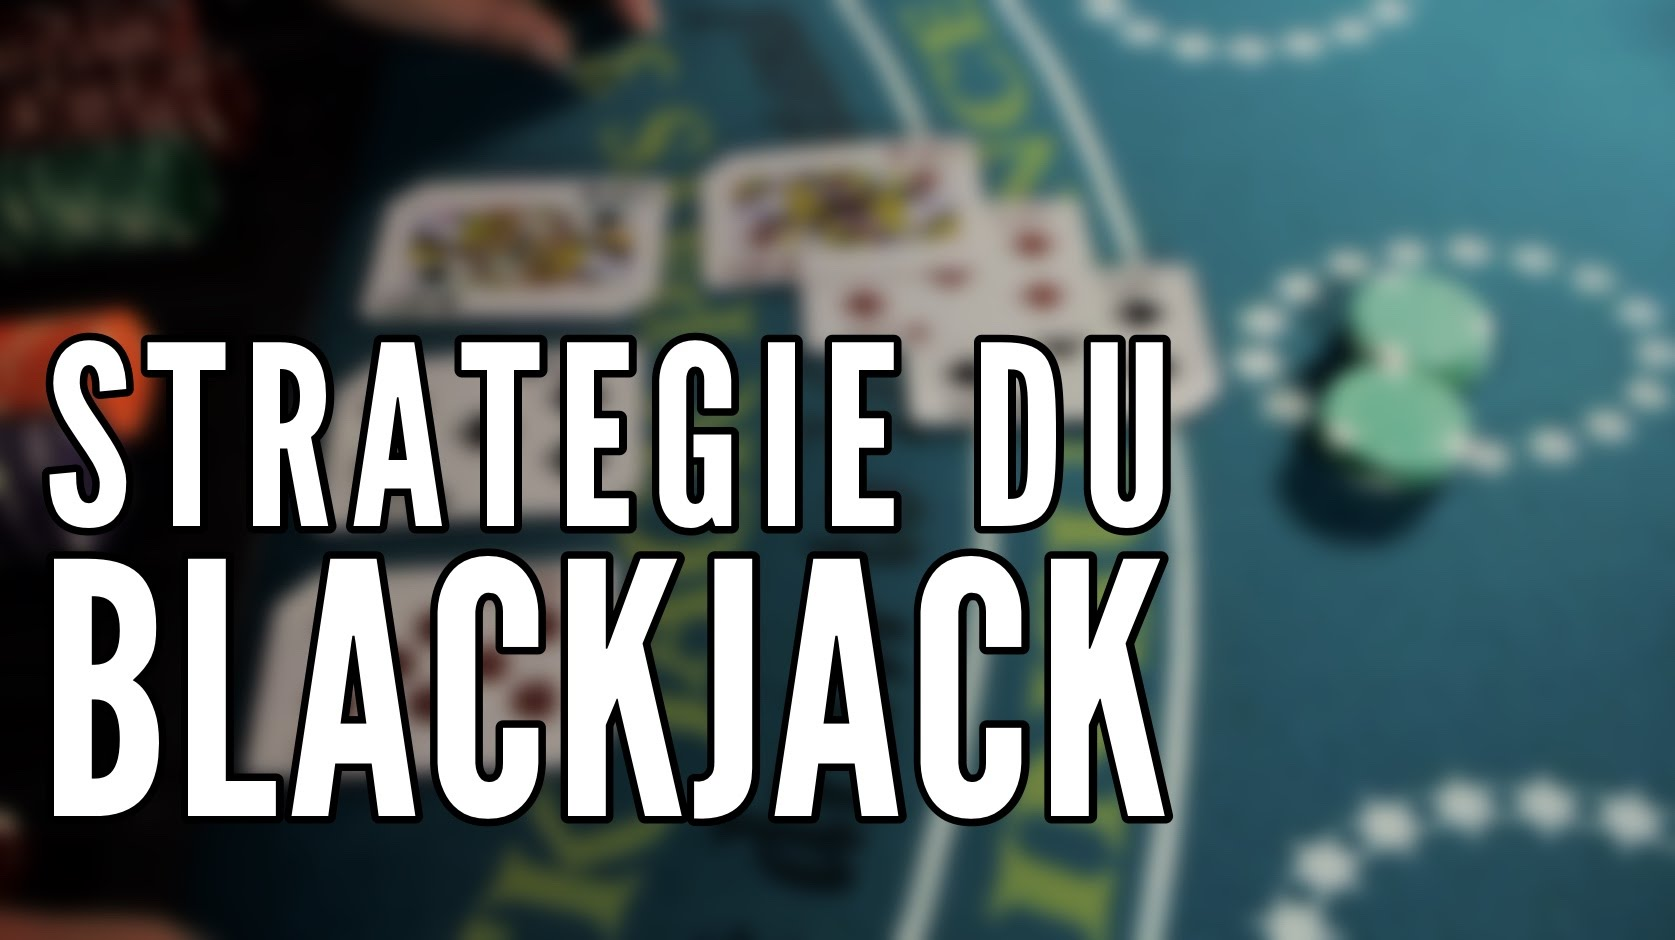 Blackjack competition